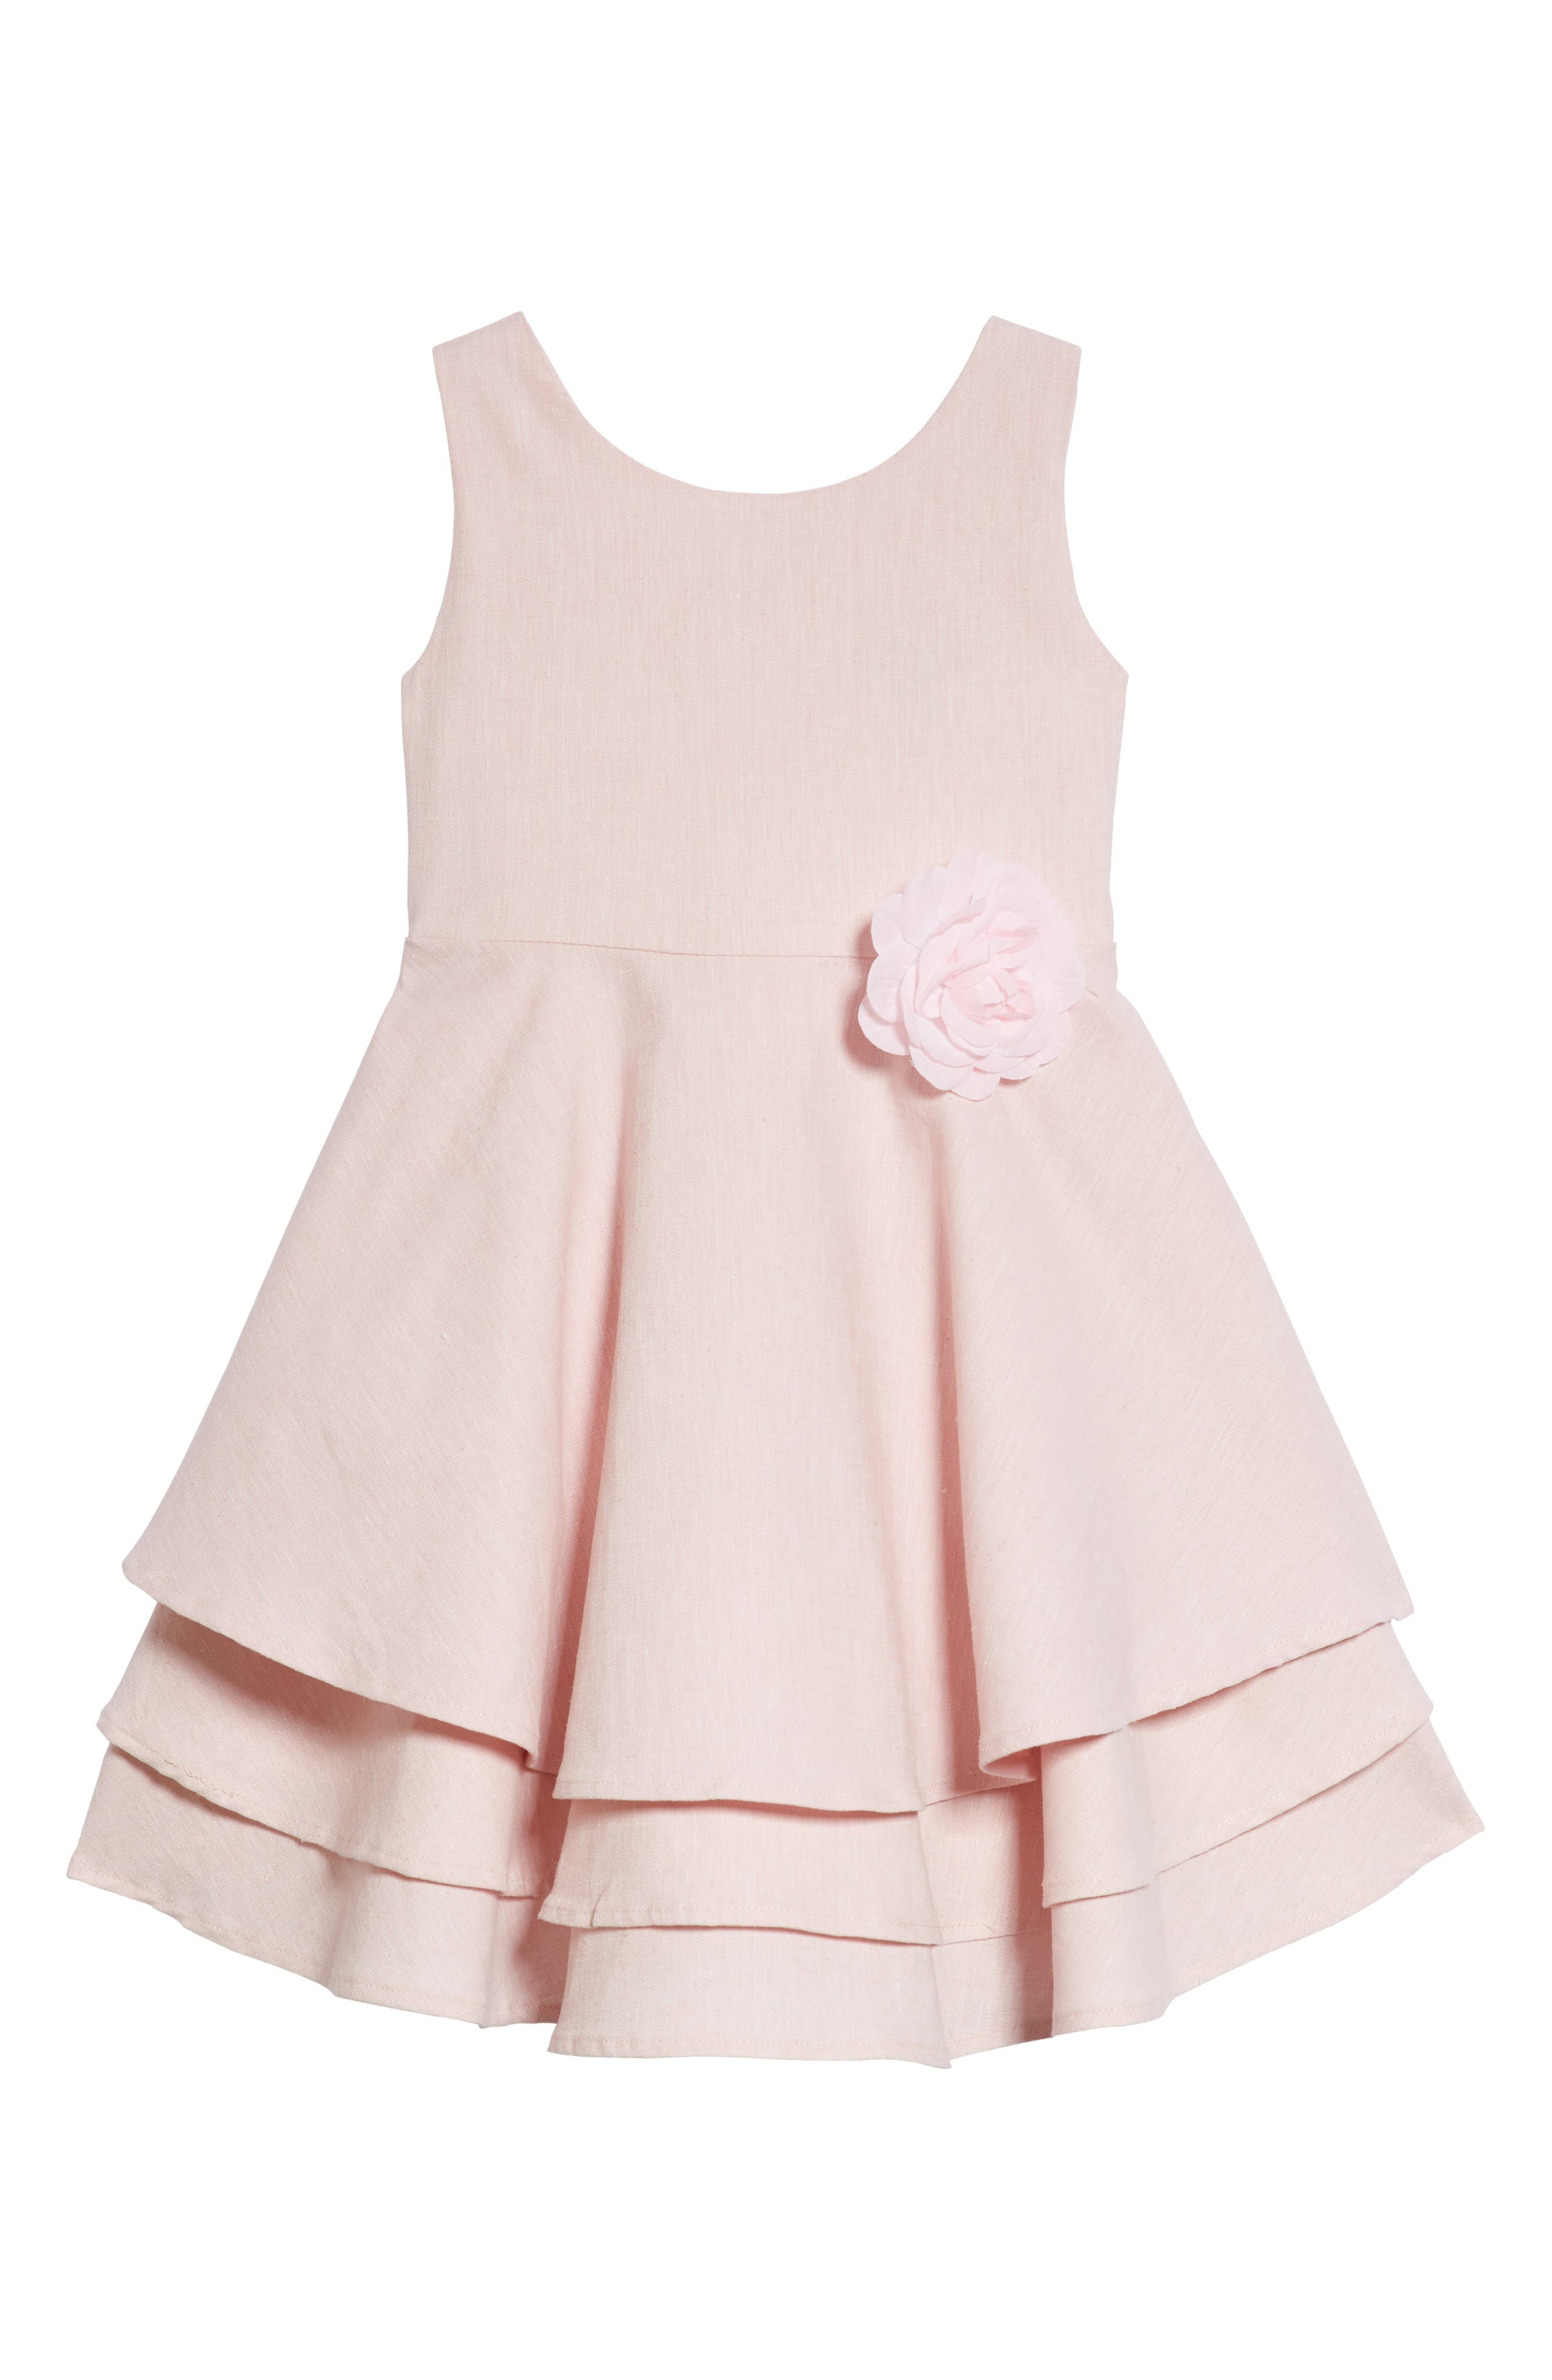 Alternate Image 1 Selected - Ava & Yelly Tiered Linen Blend Party Dress (Toddler Girls & Little Girls)